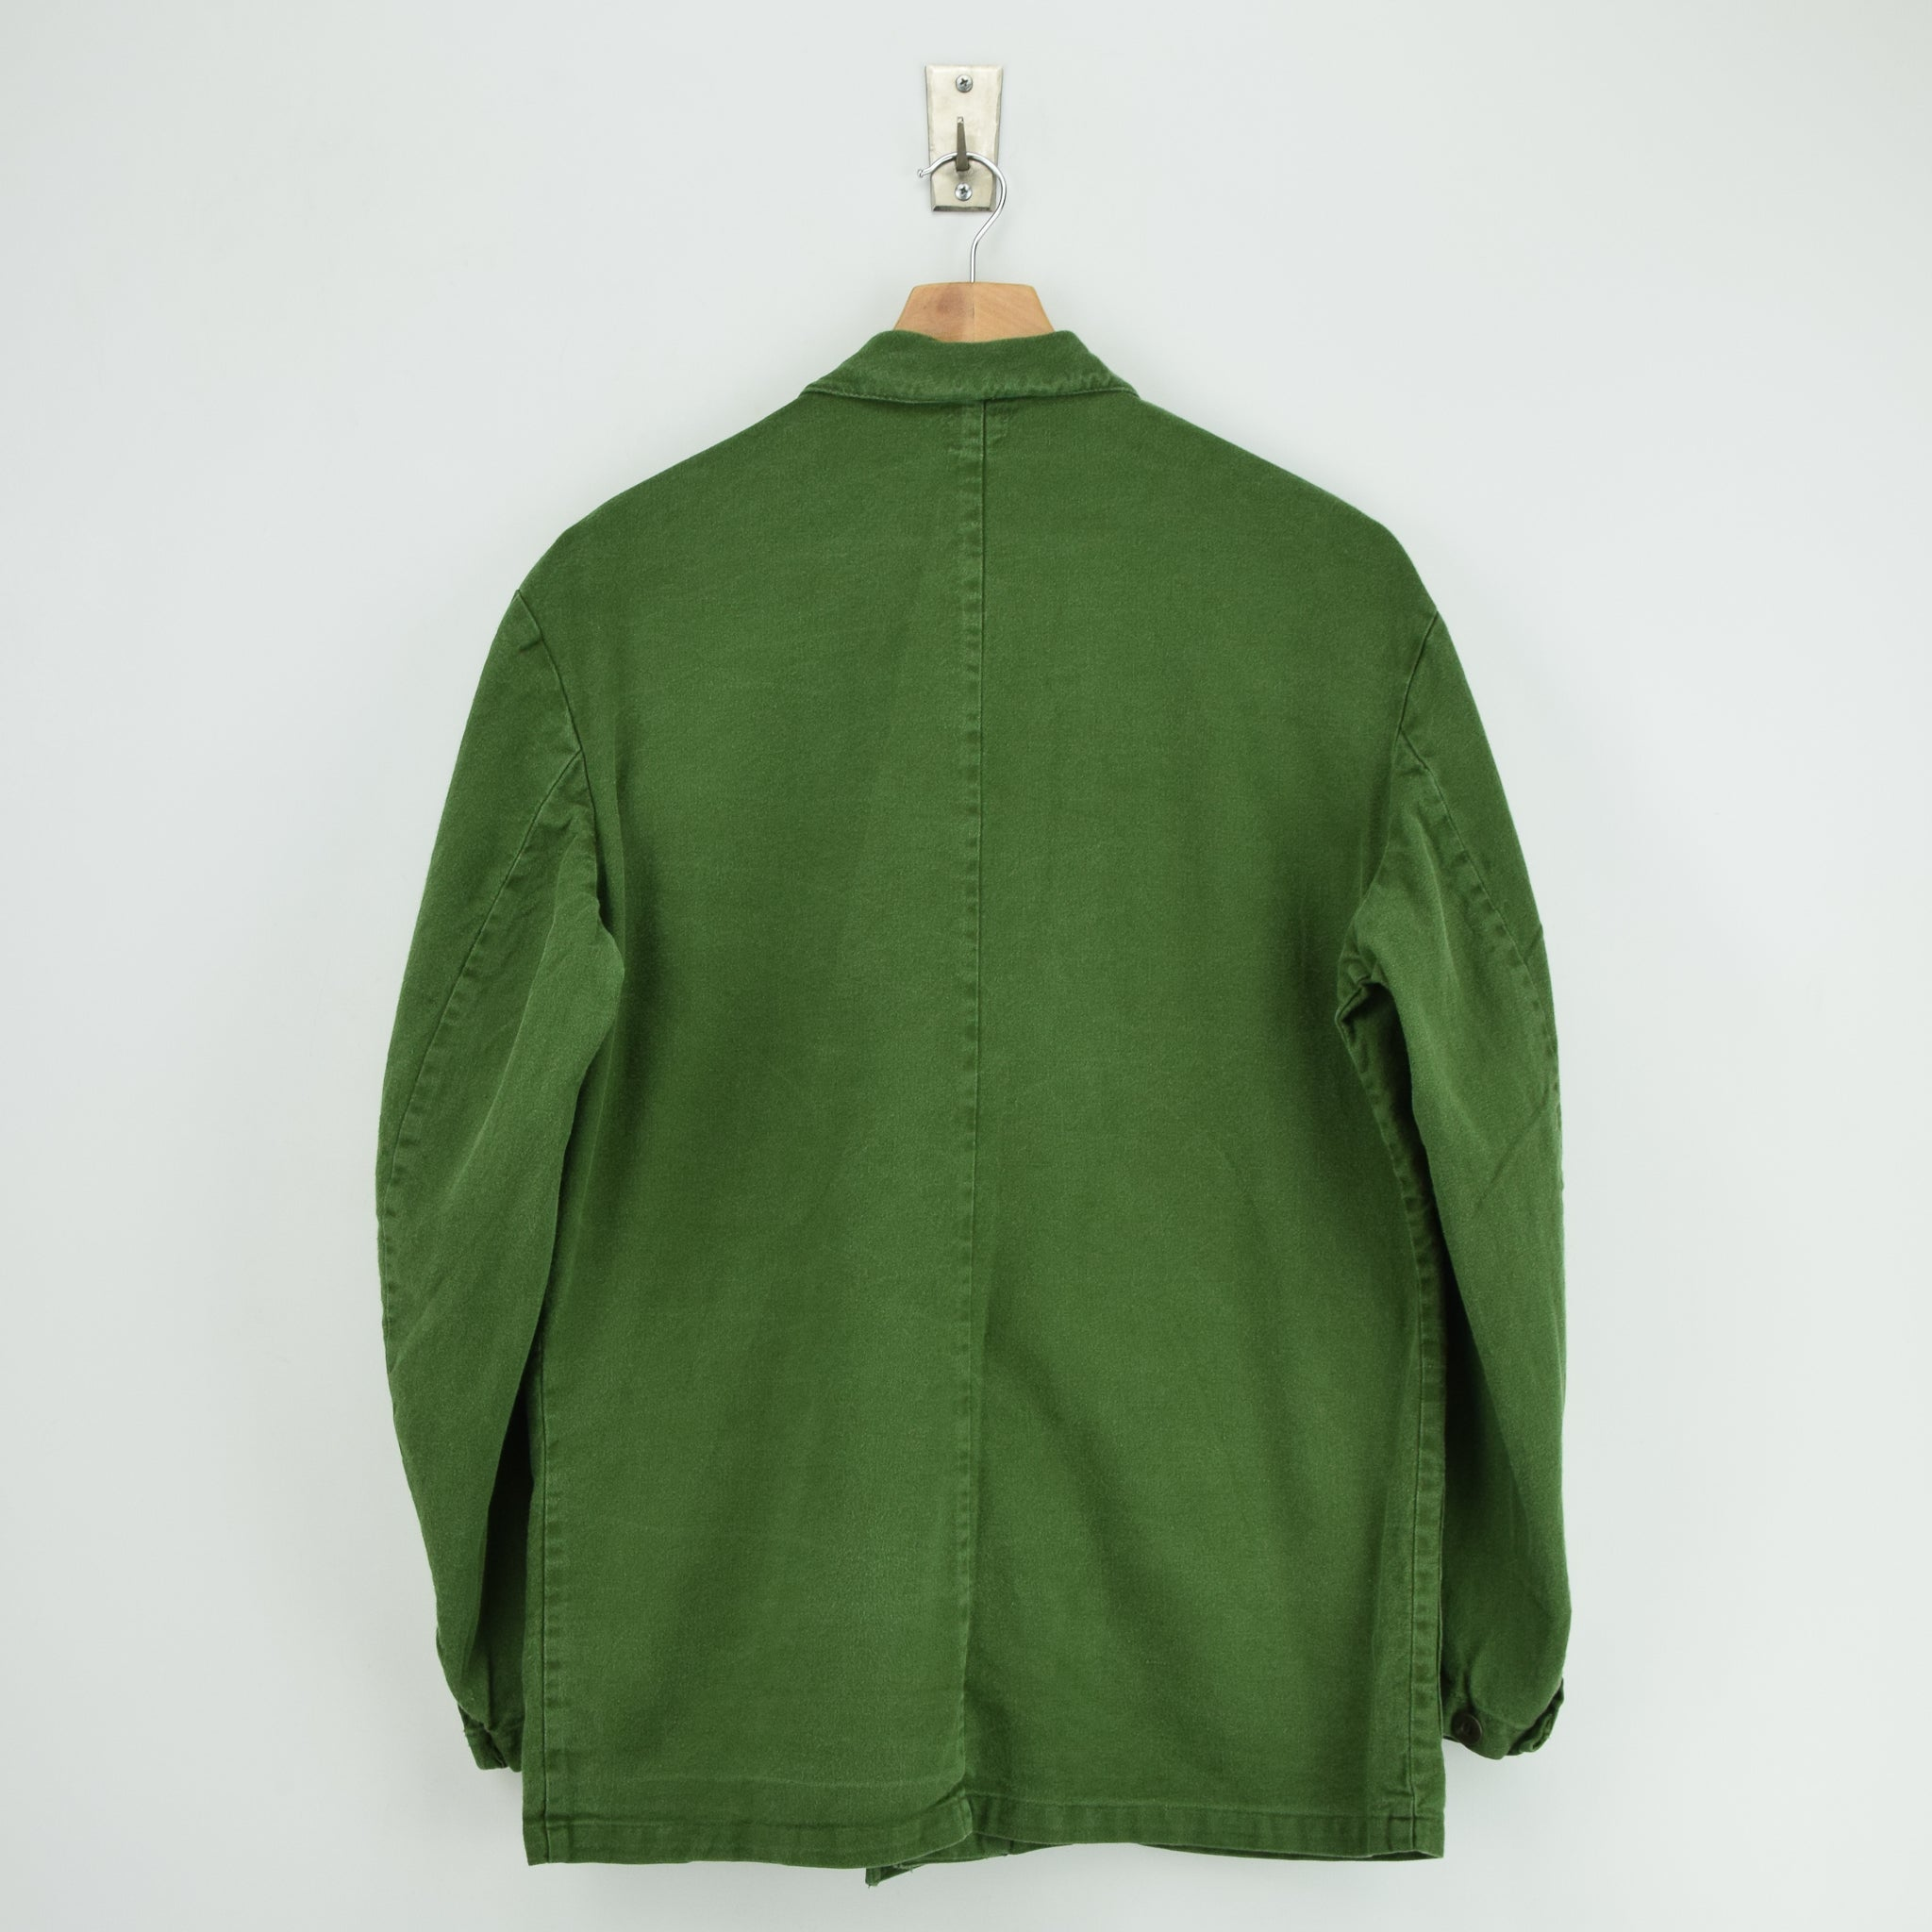 Vintage Swedish Worker Style Distressed Green Military Field Jacket M / L back